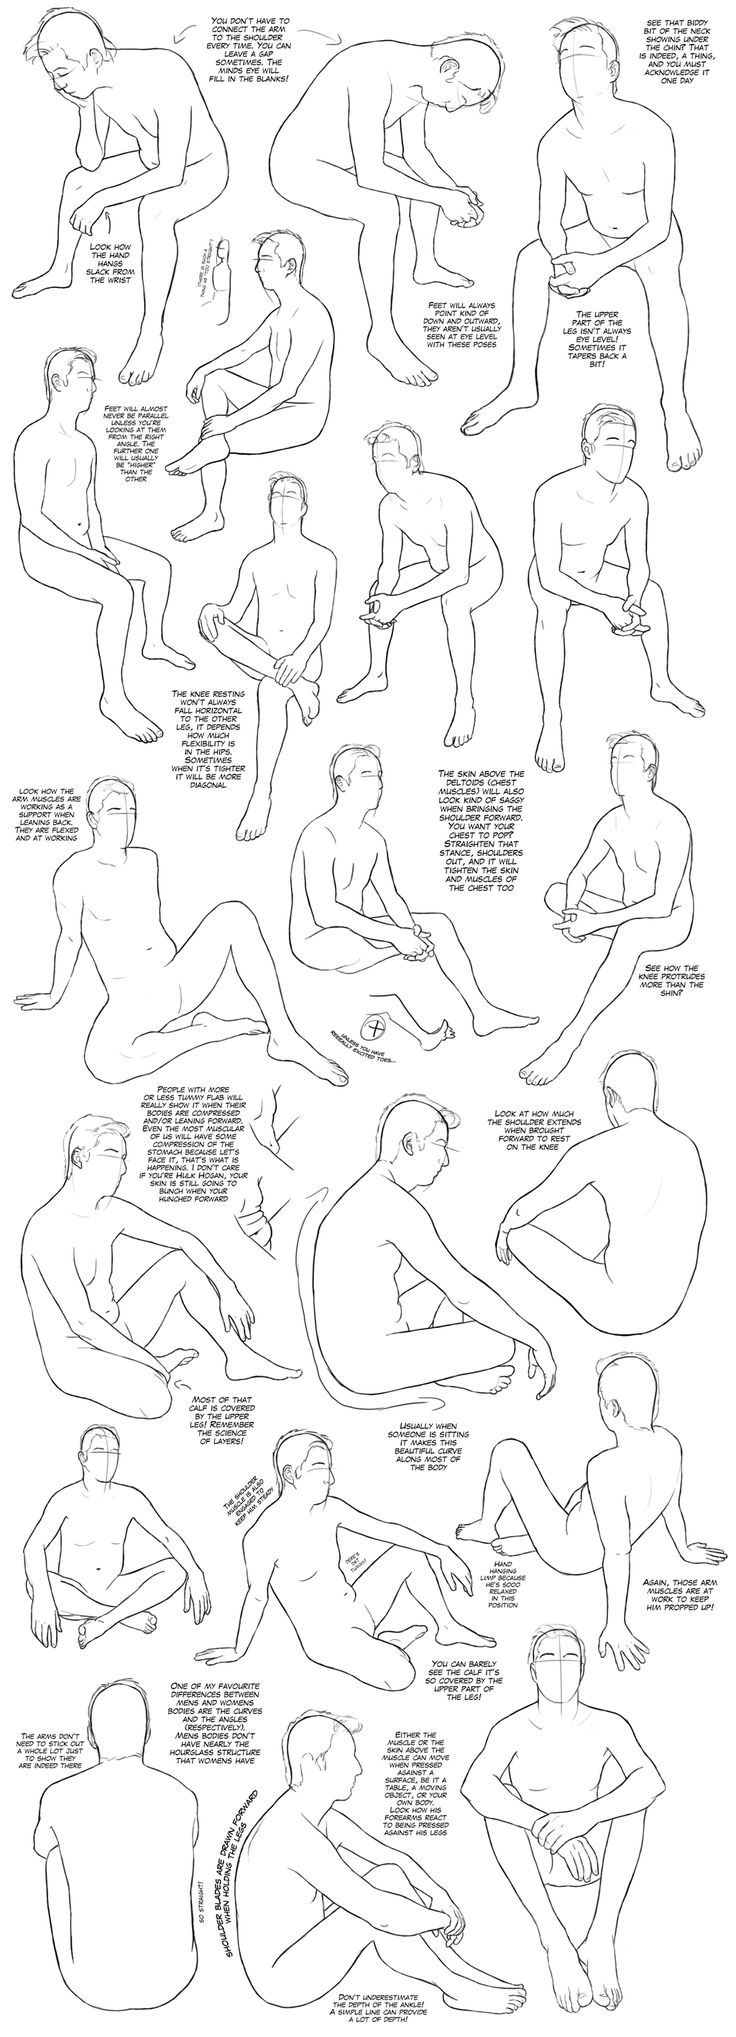 235 best draw a human - anatomy images on Pinterest | Human anatomy ...